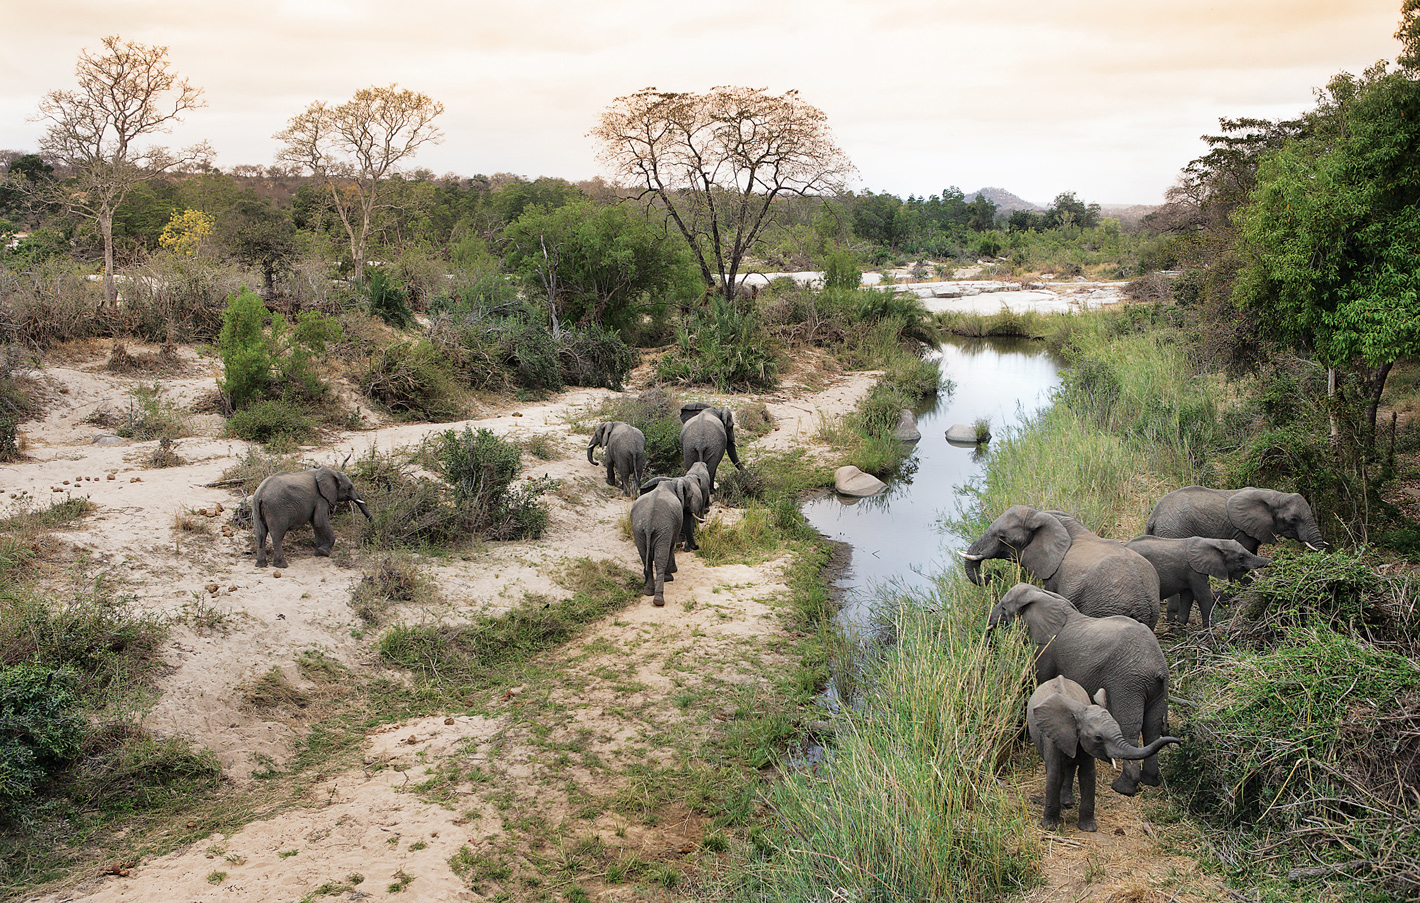 Elephants in Londolozi